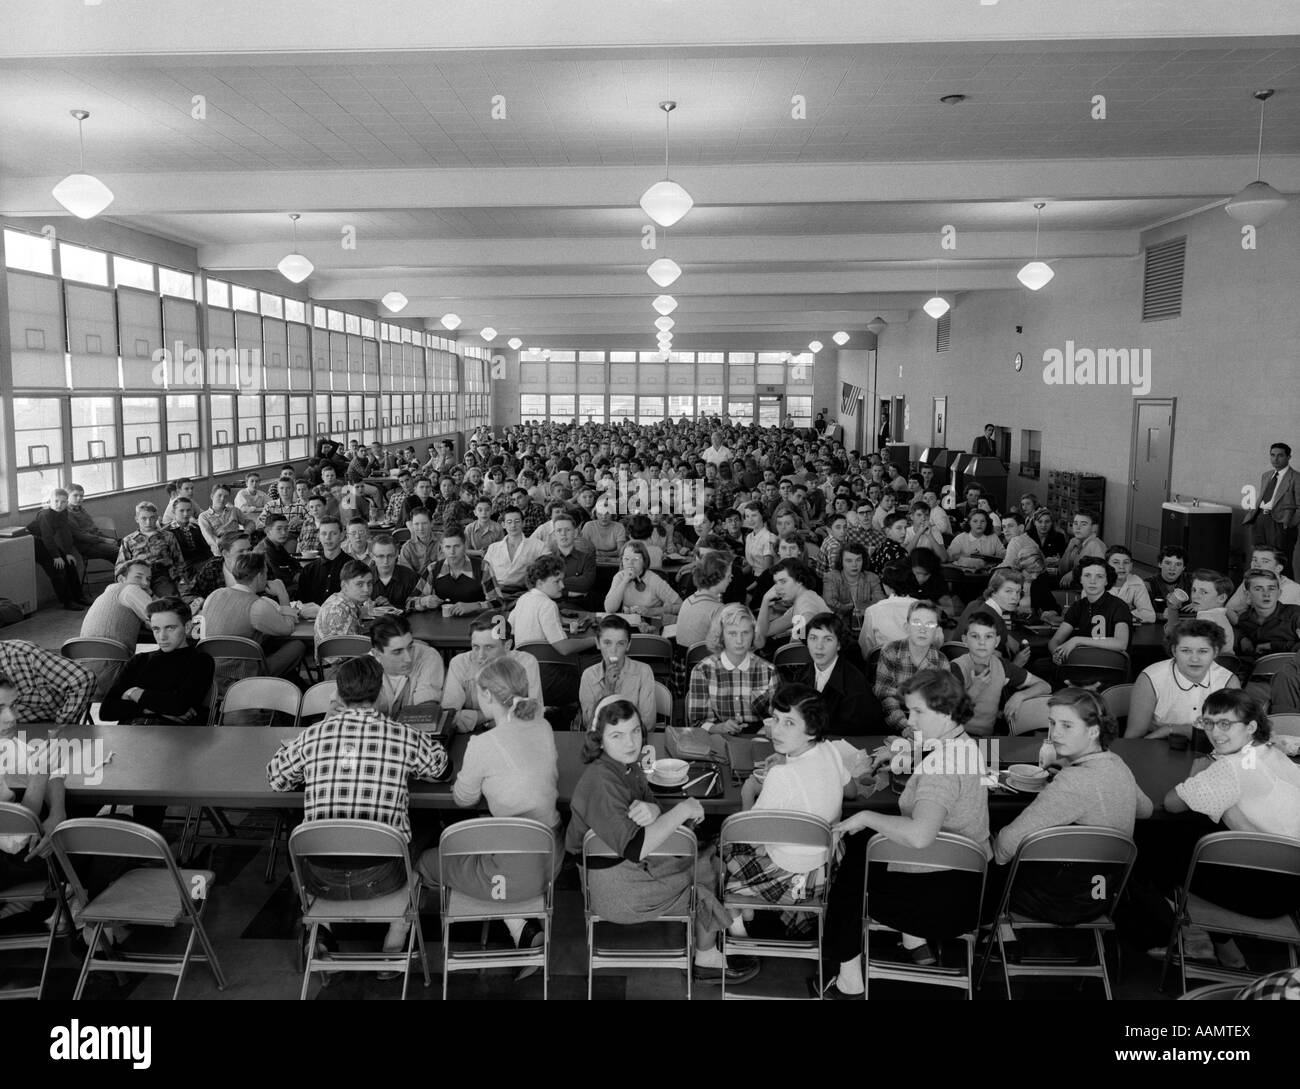 1950s CROWDED HIGH SCHOOL CAFETERIA Stock Photo: 12665137 ...